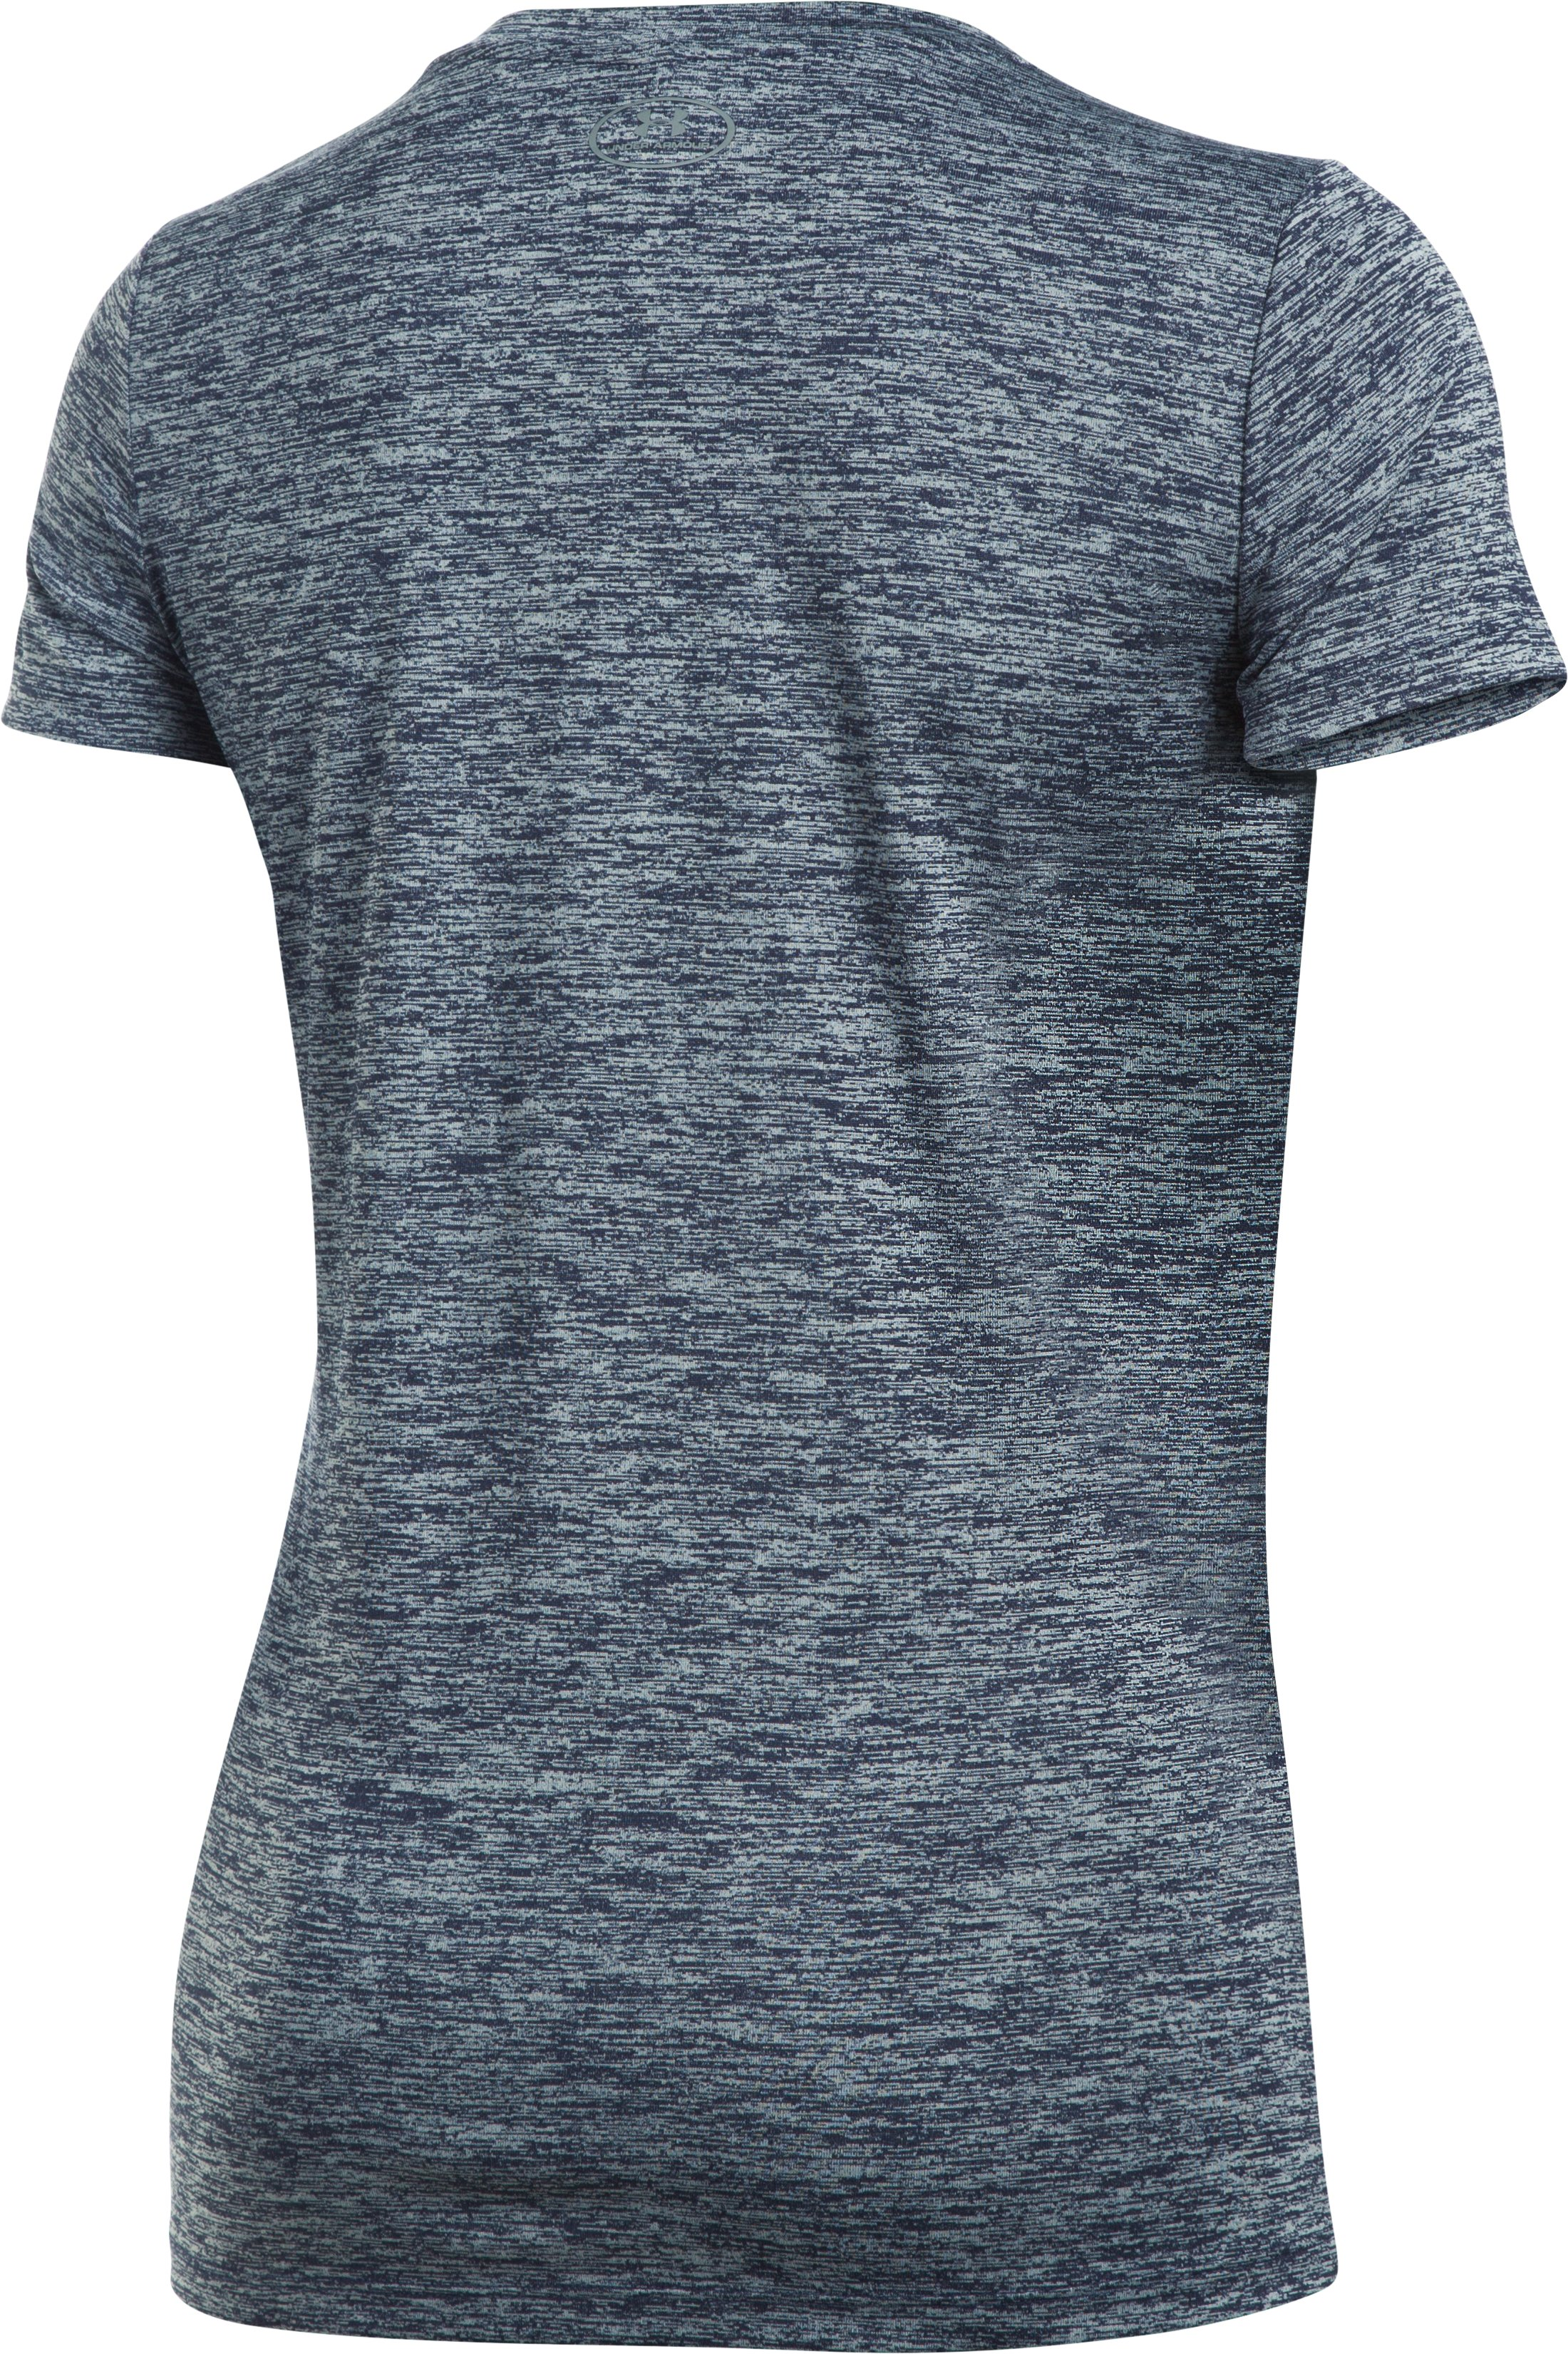 Women's UA Tech™ T-Shirt - Twist Graphic, Midnight Navy,